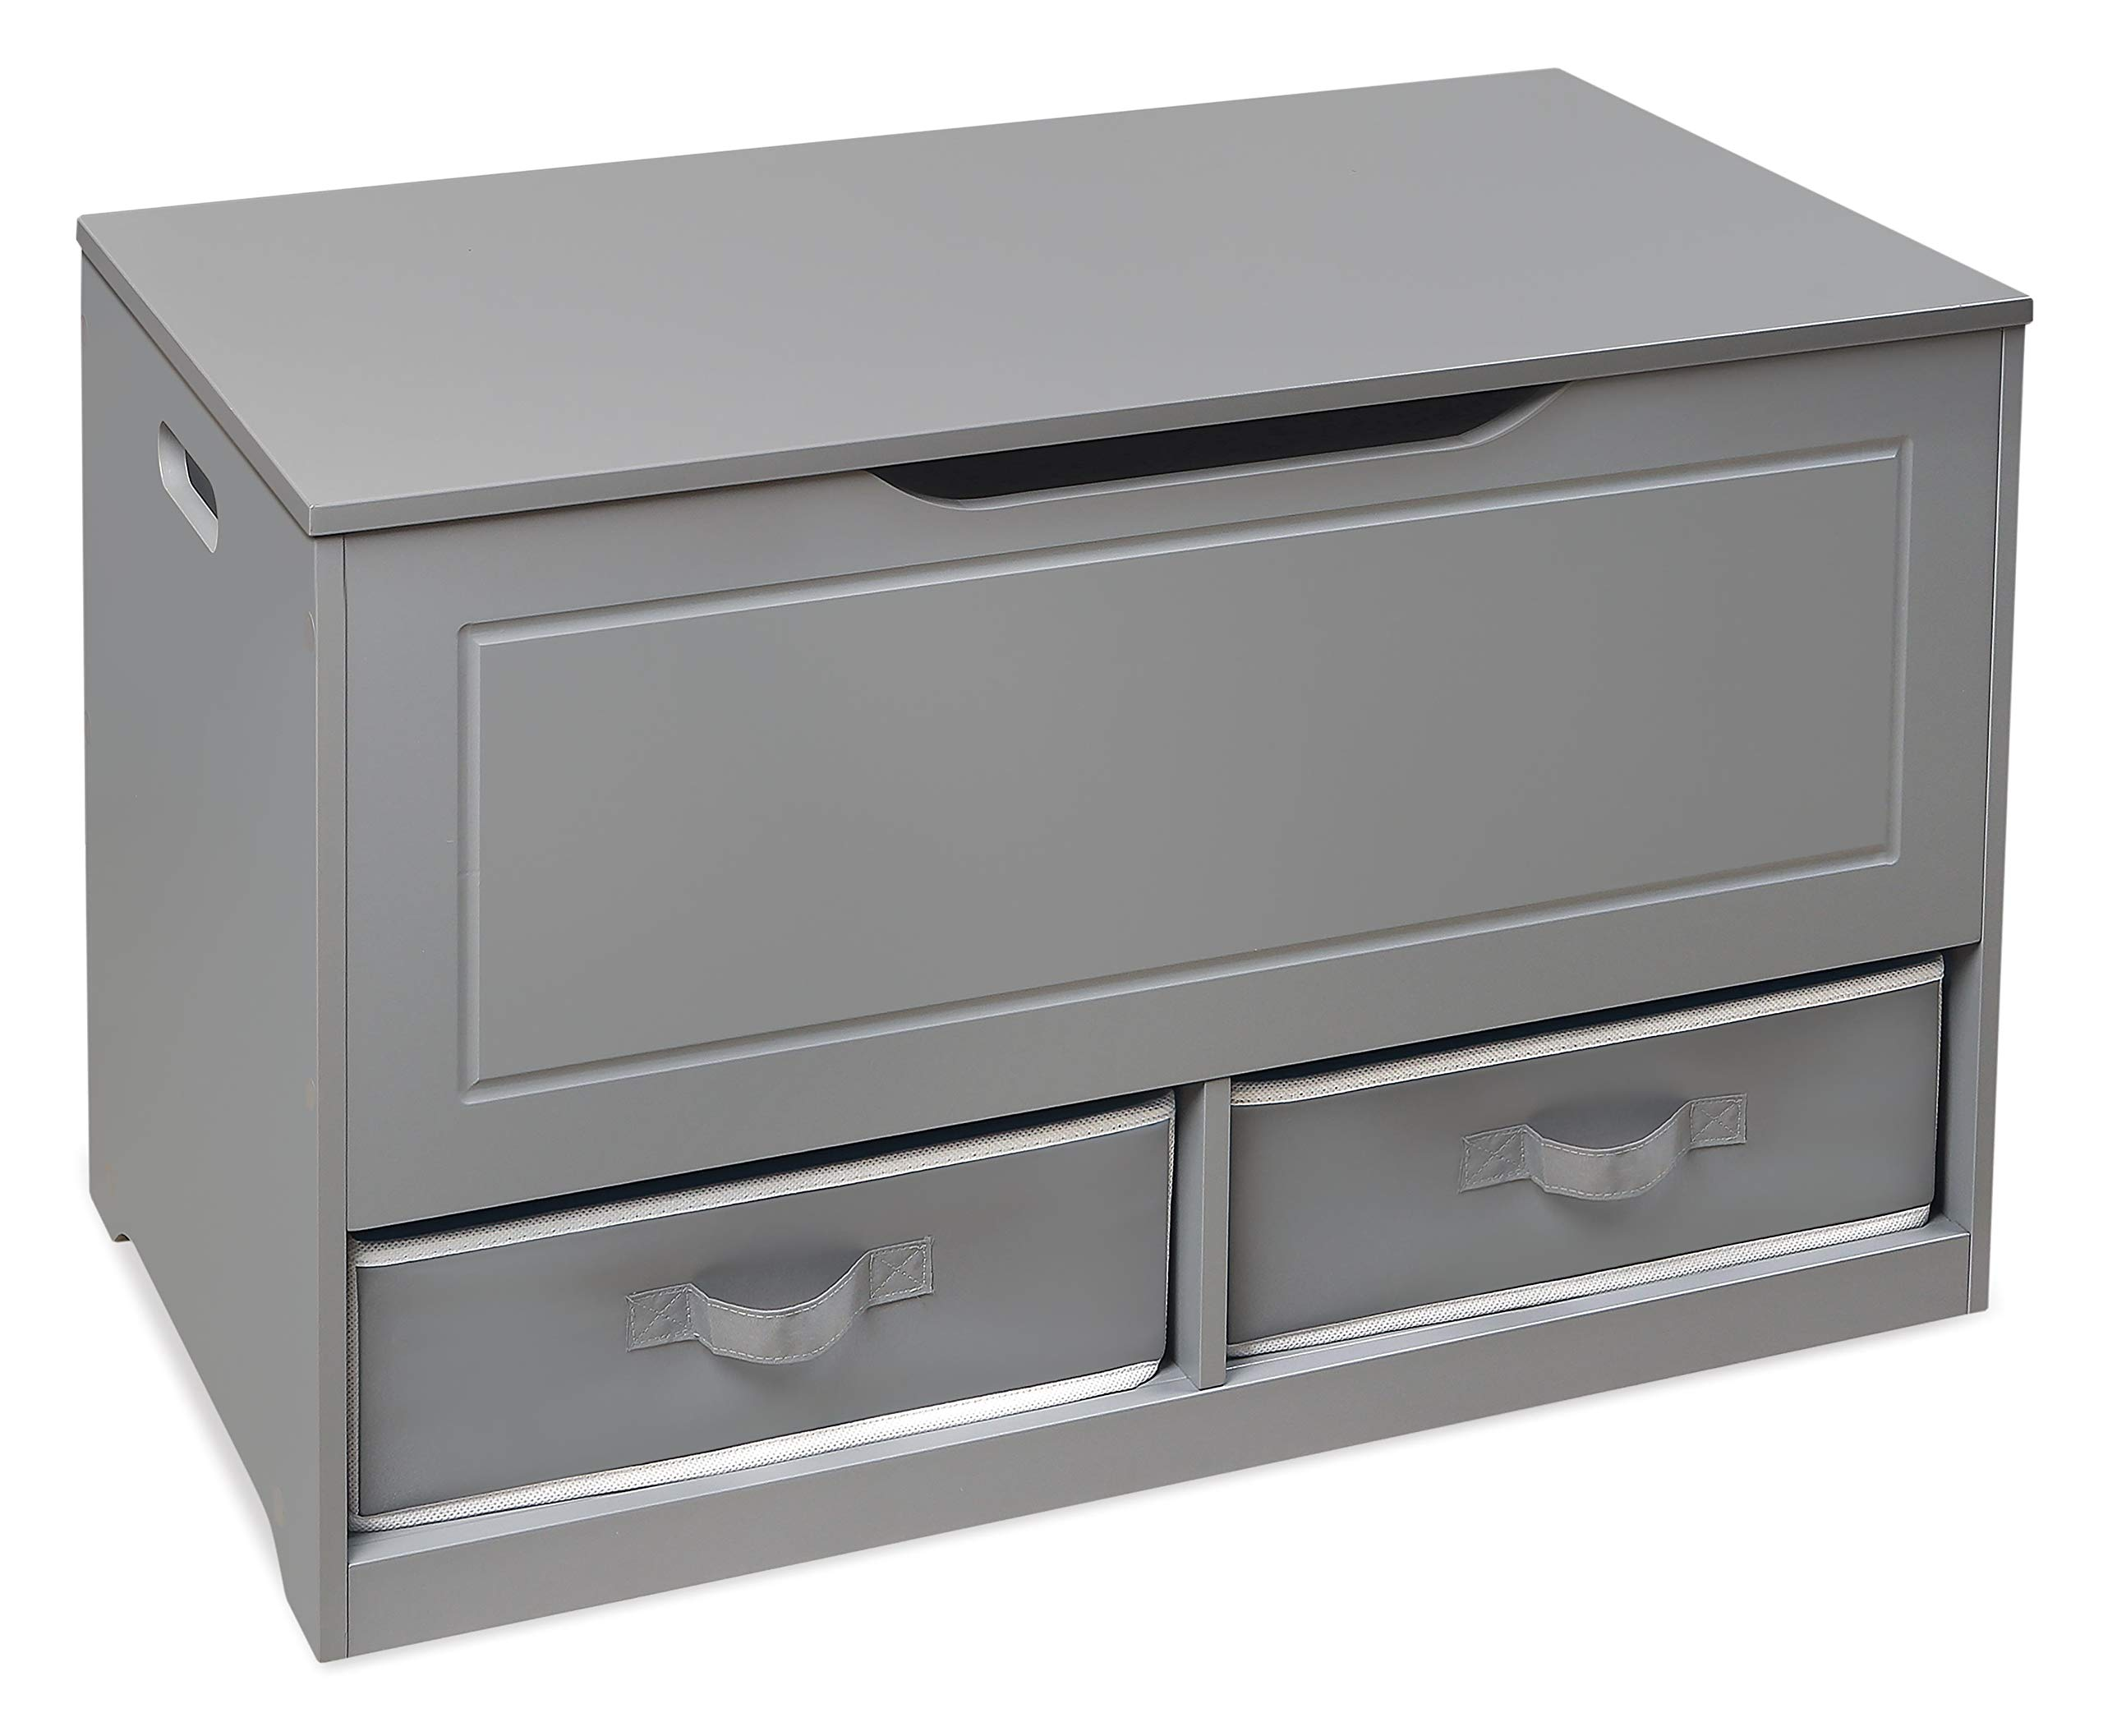 Badger Basket Up and Down Toy and Storage Box with 2 Basket Drawers, Gray/White by Badger Basket (Image #1)